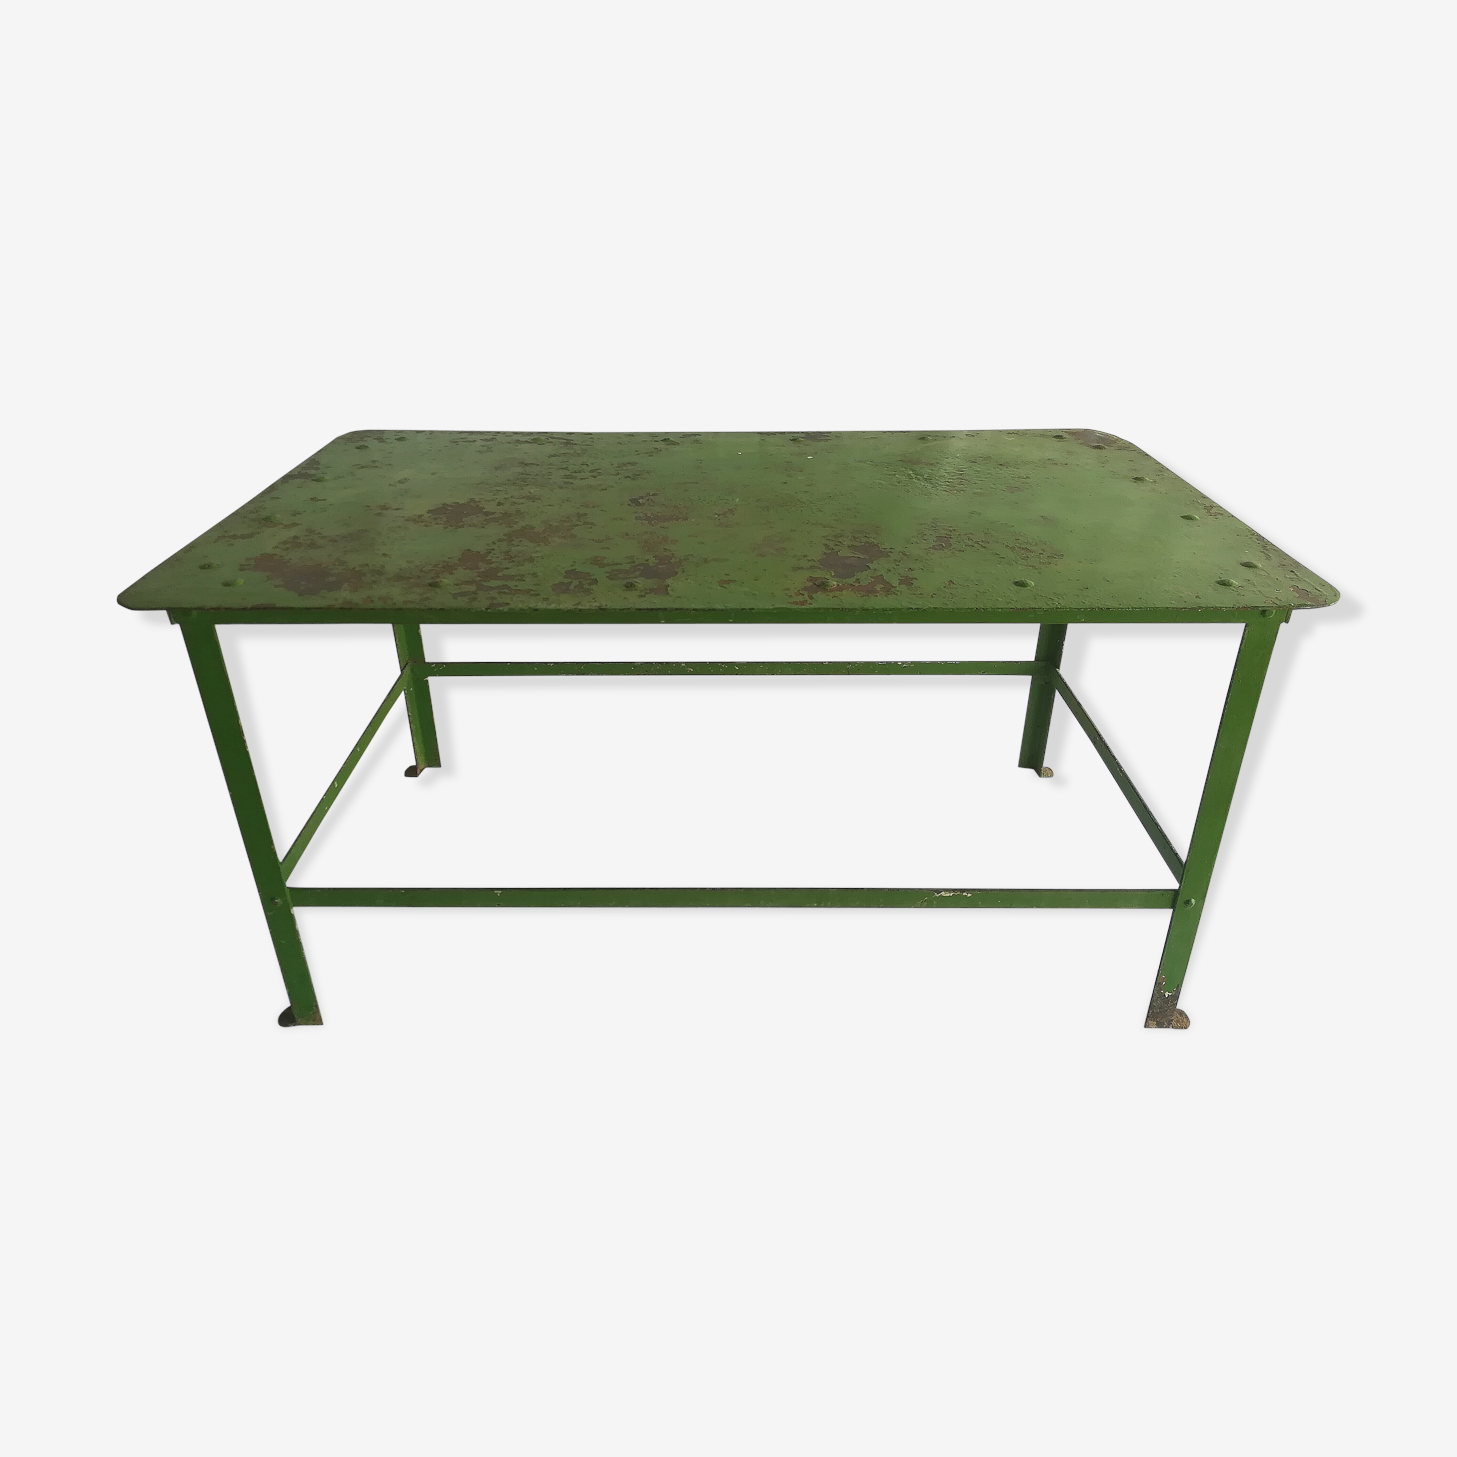 Table industrial green, metal and rivets years 40